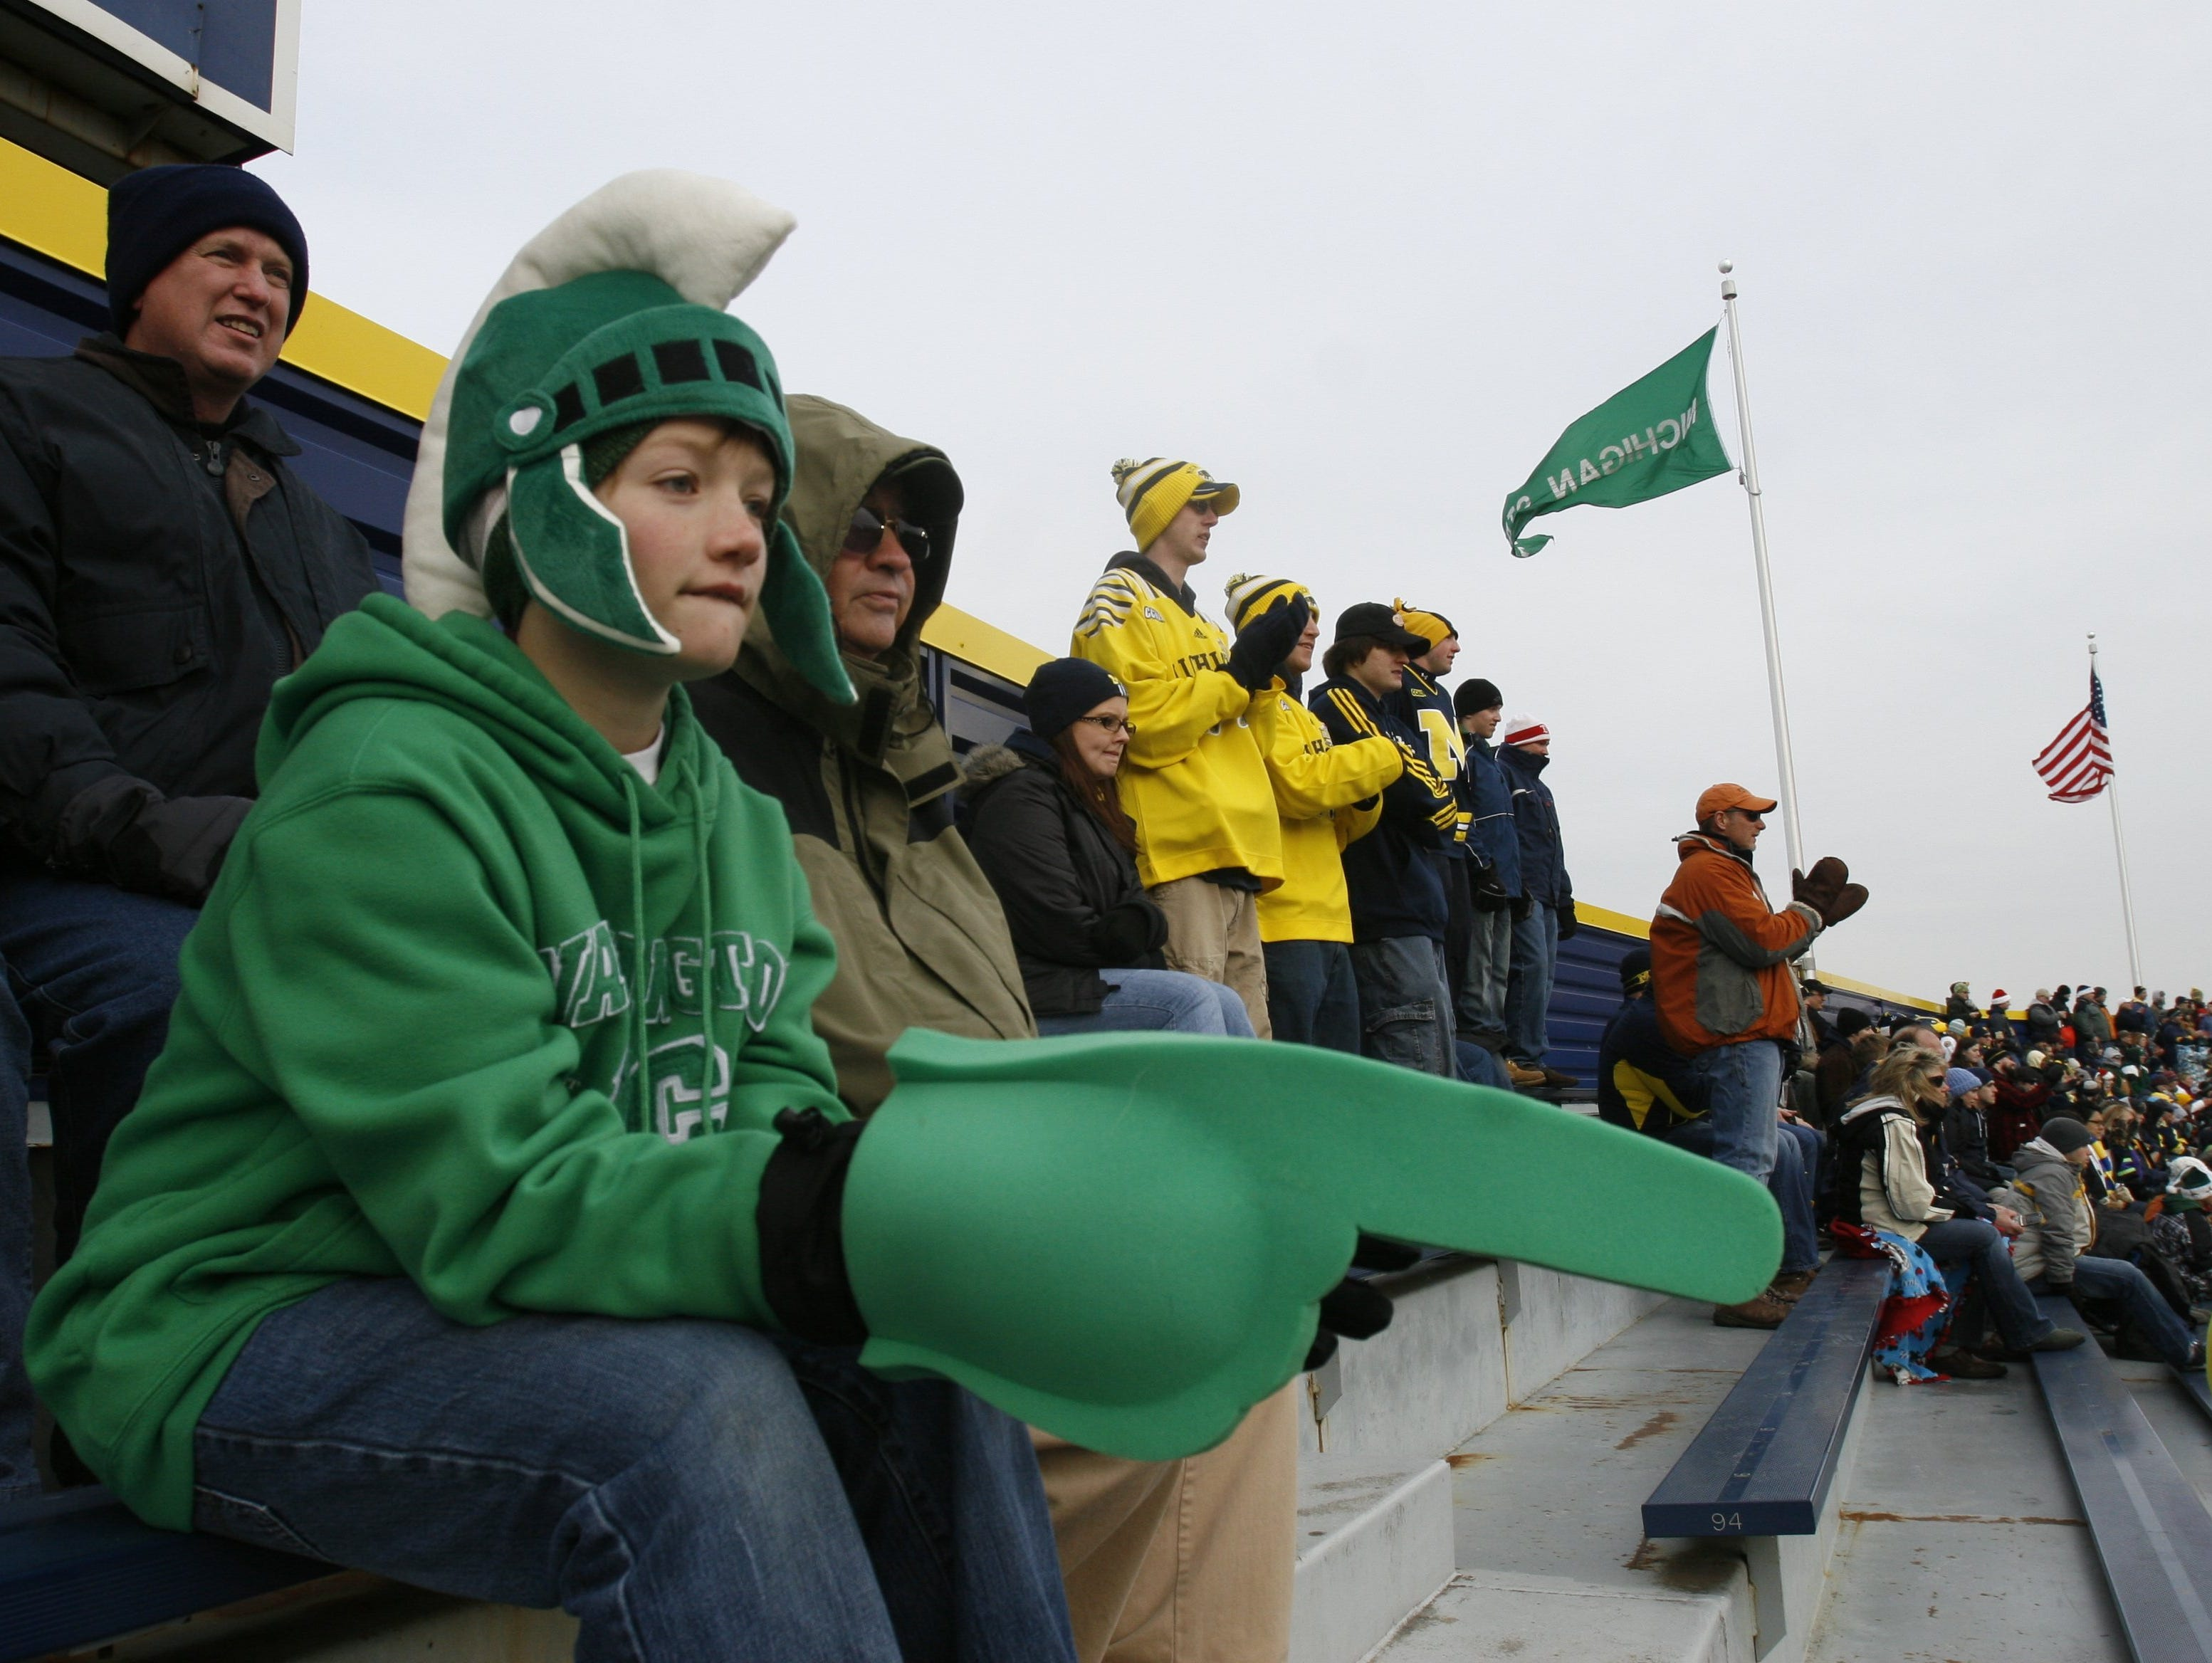 Michigan State fan Collin Turkelsomn, 11, of Charlevoix, MI watches the game at Big Chill game at Michigan Stadium .